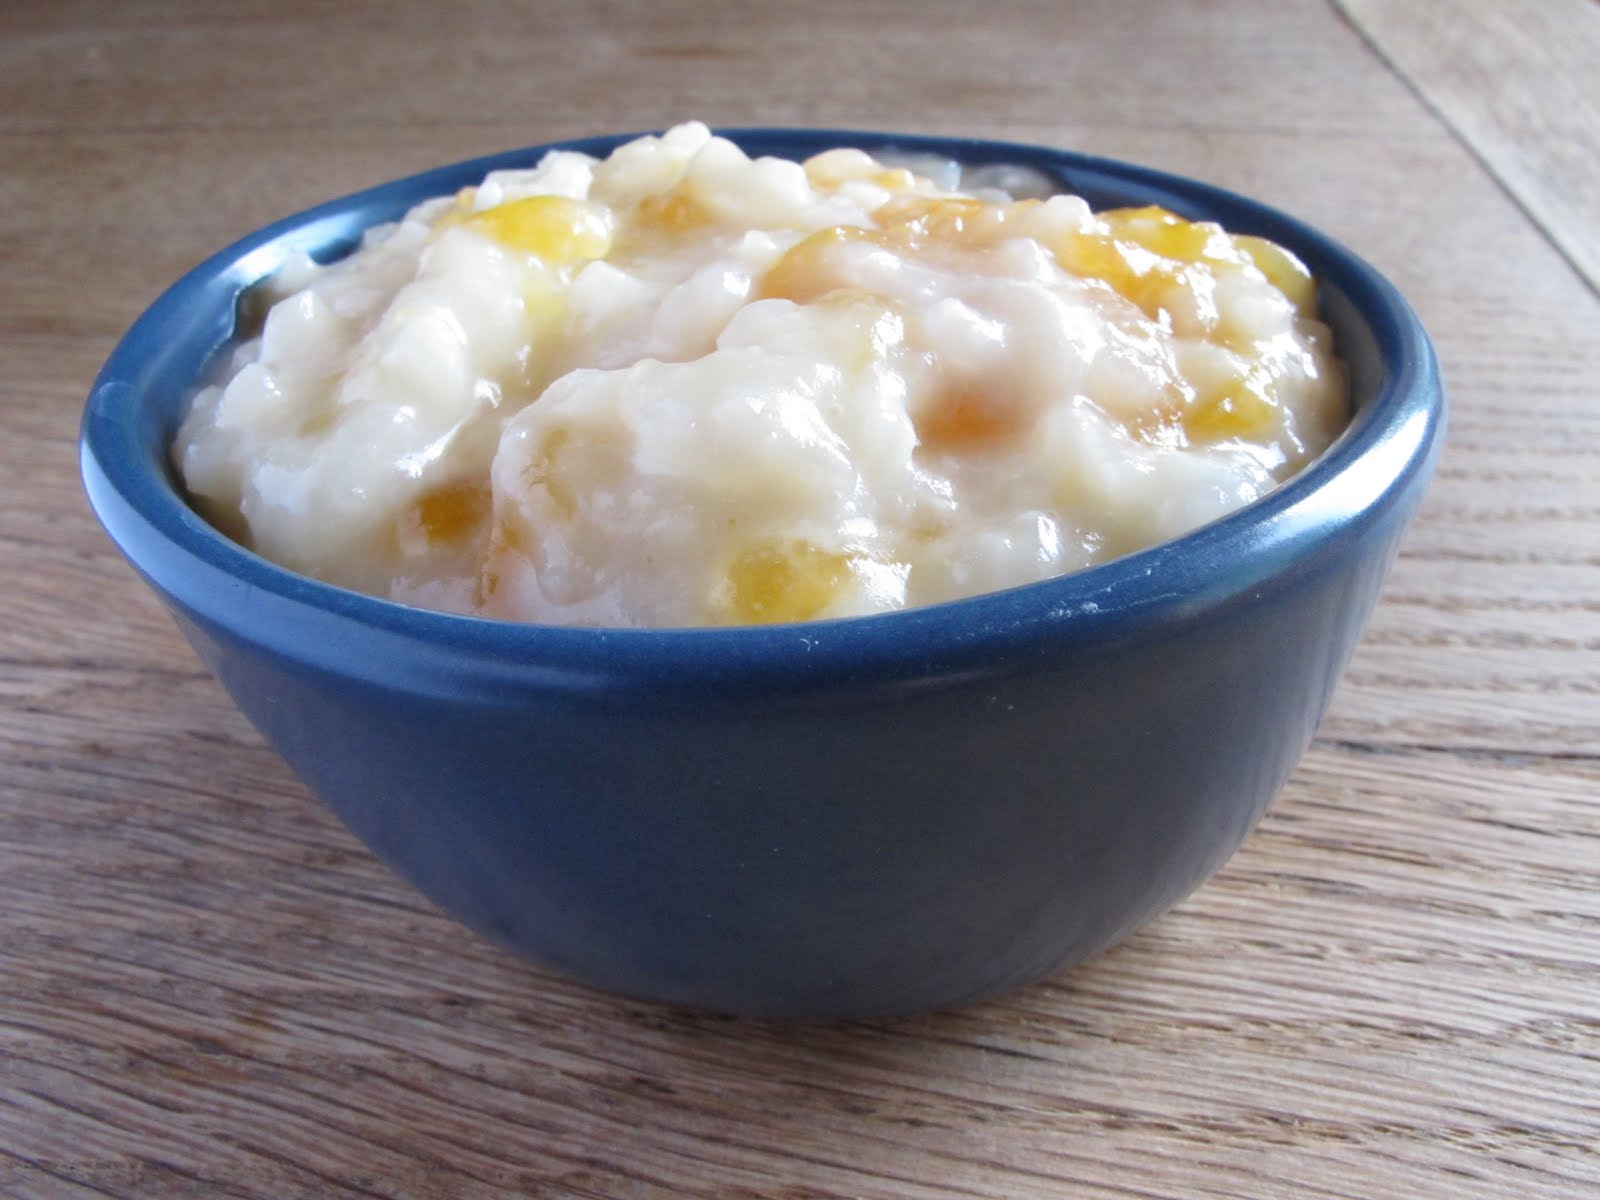 Rice pudding recipe with loquats and coconut milk